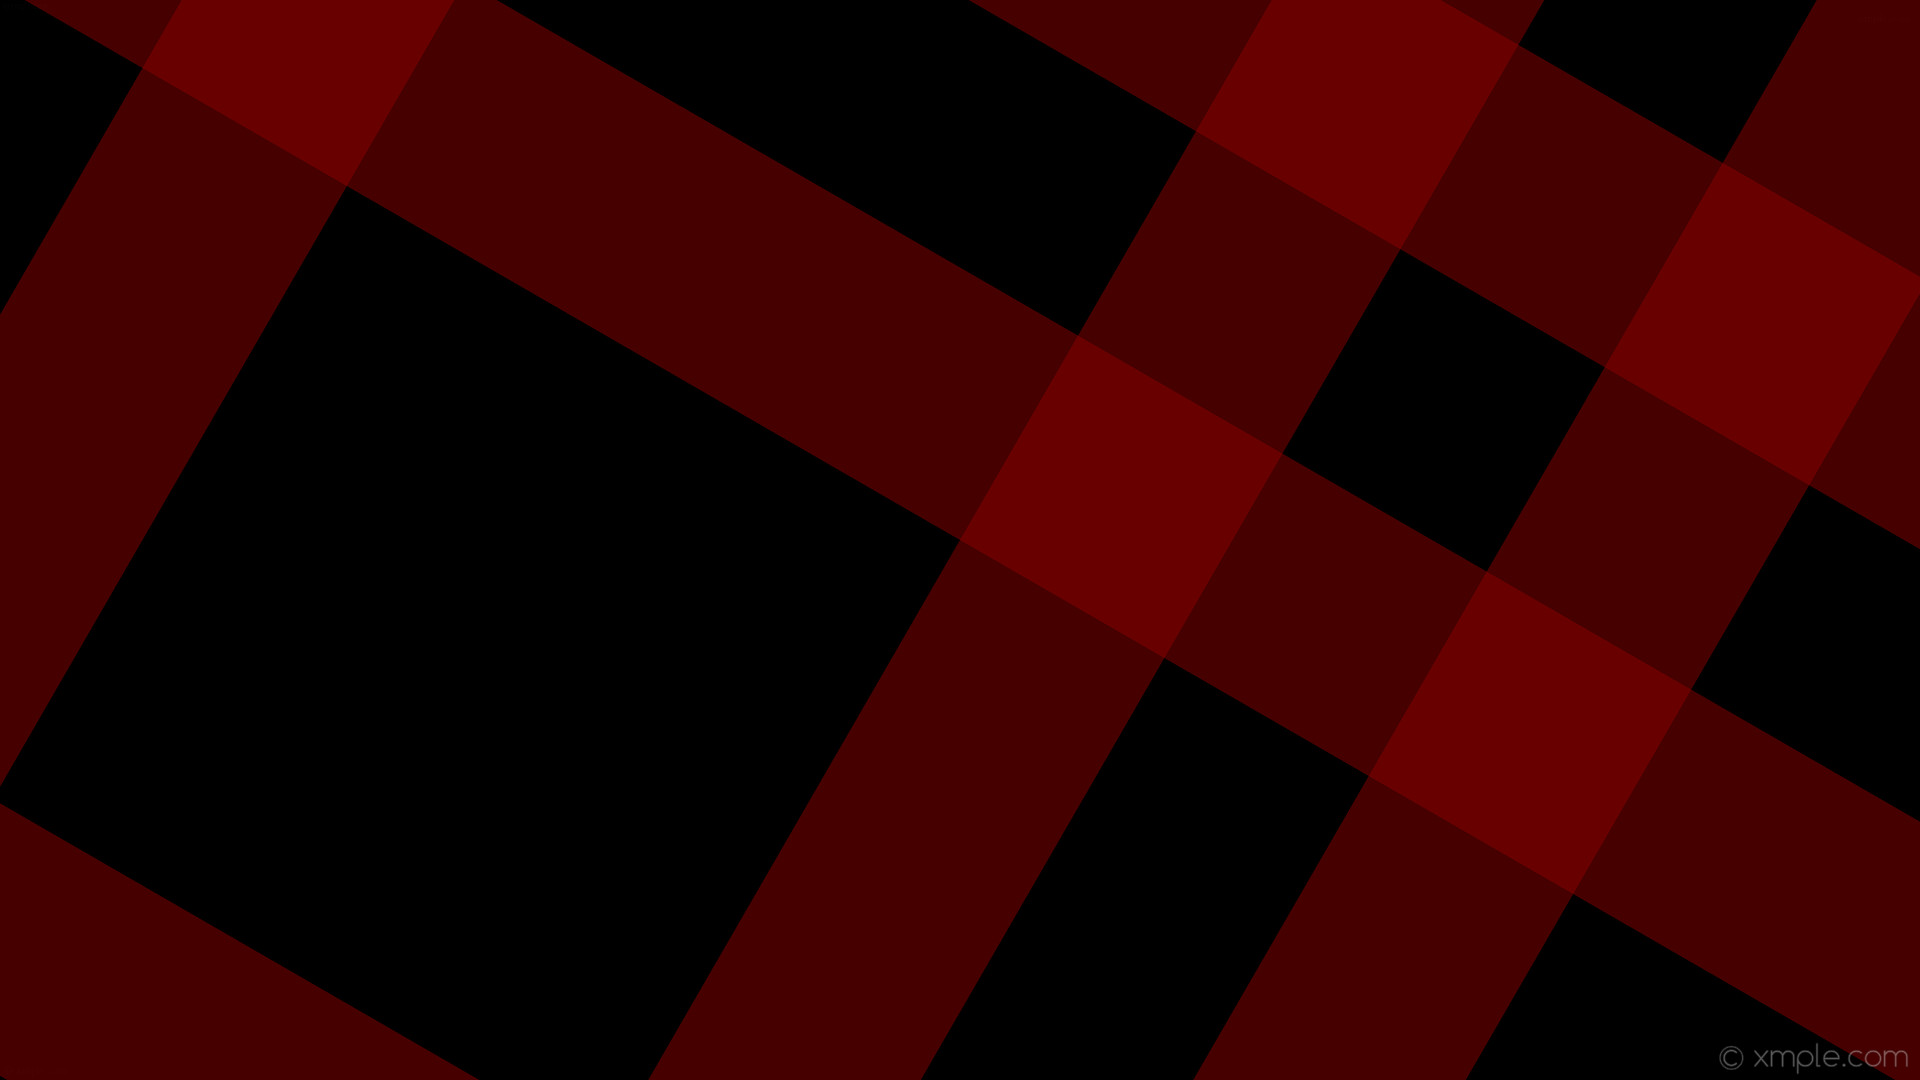 1920x1080 wallpaper dual black striped red gingham dark red #000000 #8b0000 60° 236px